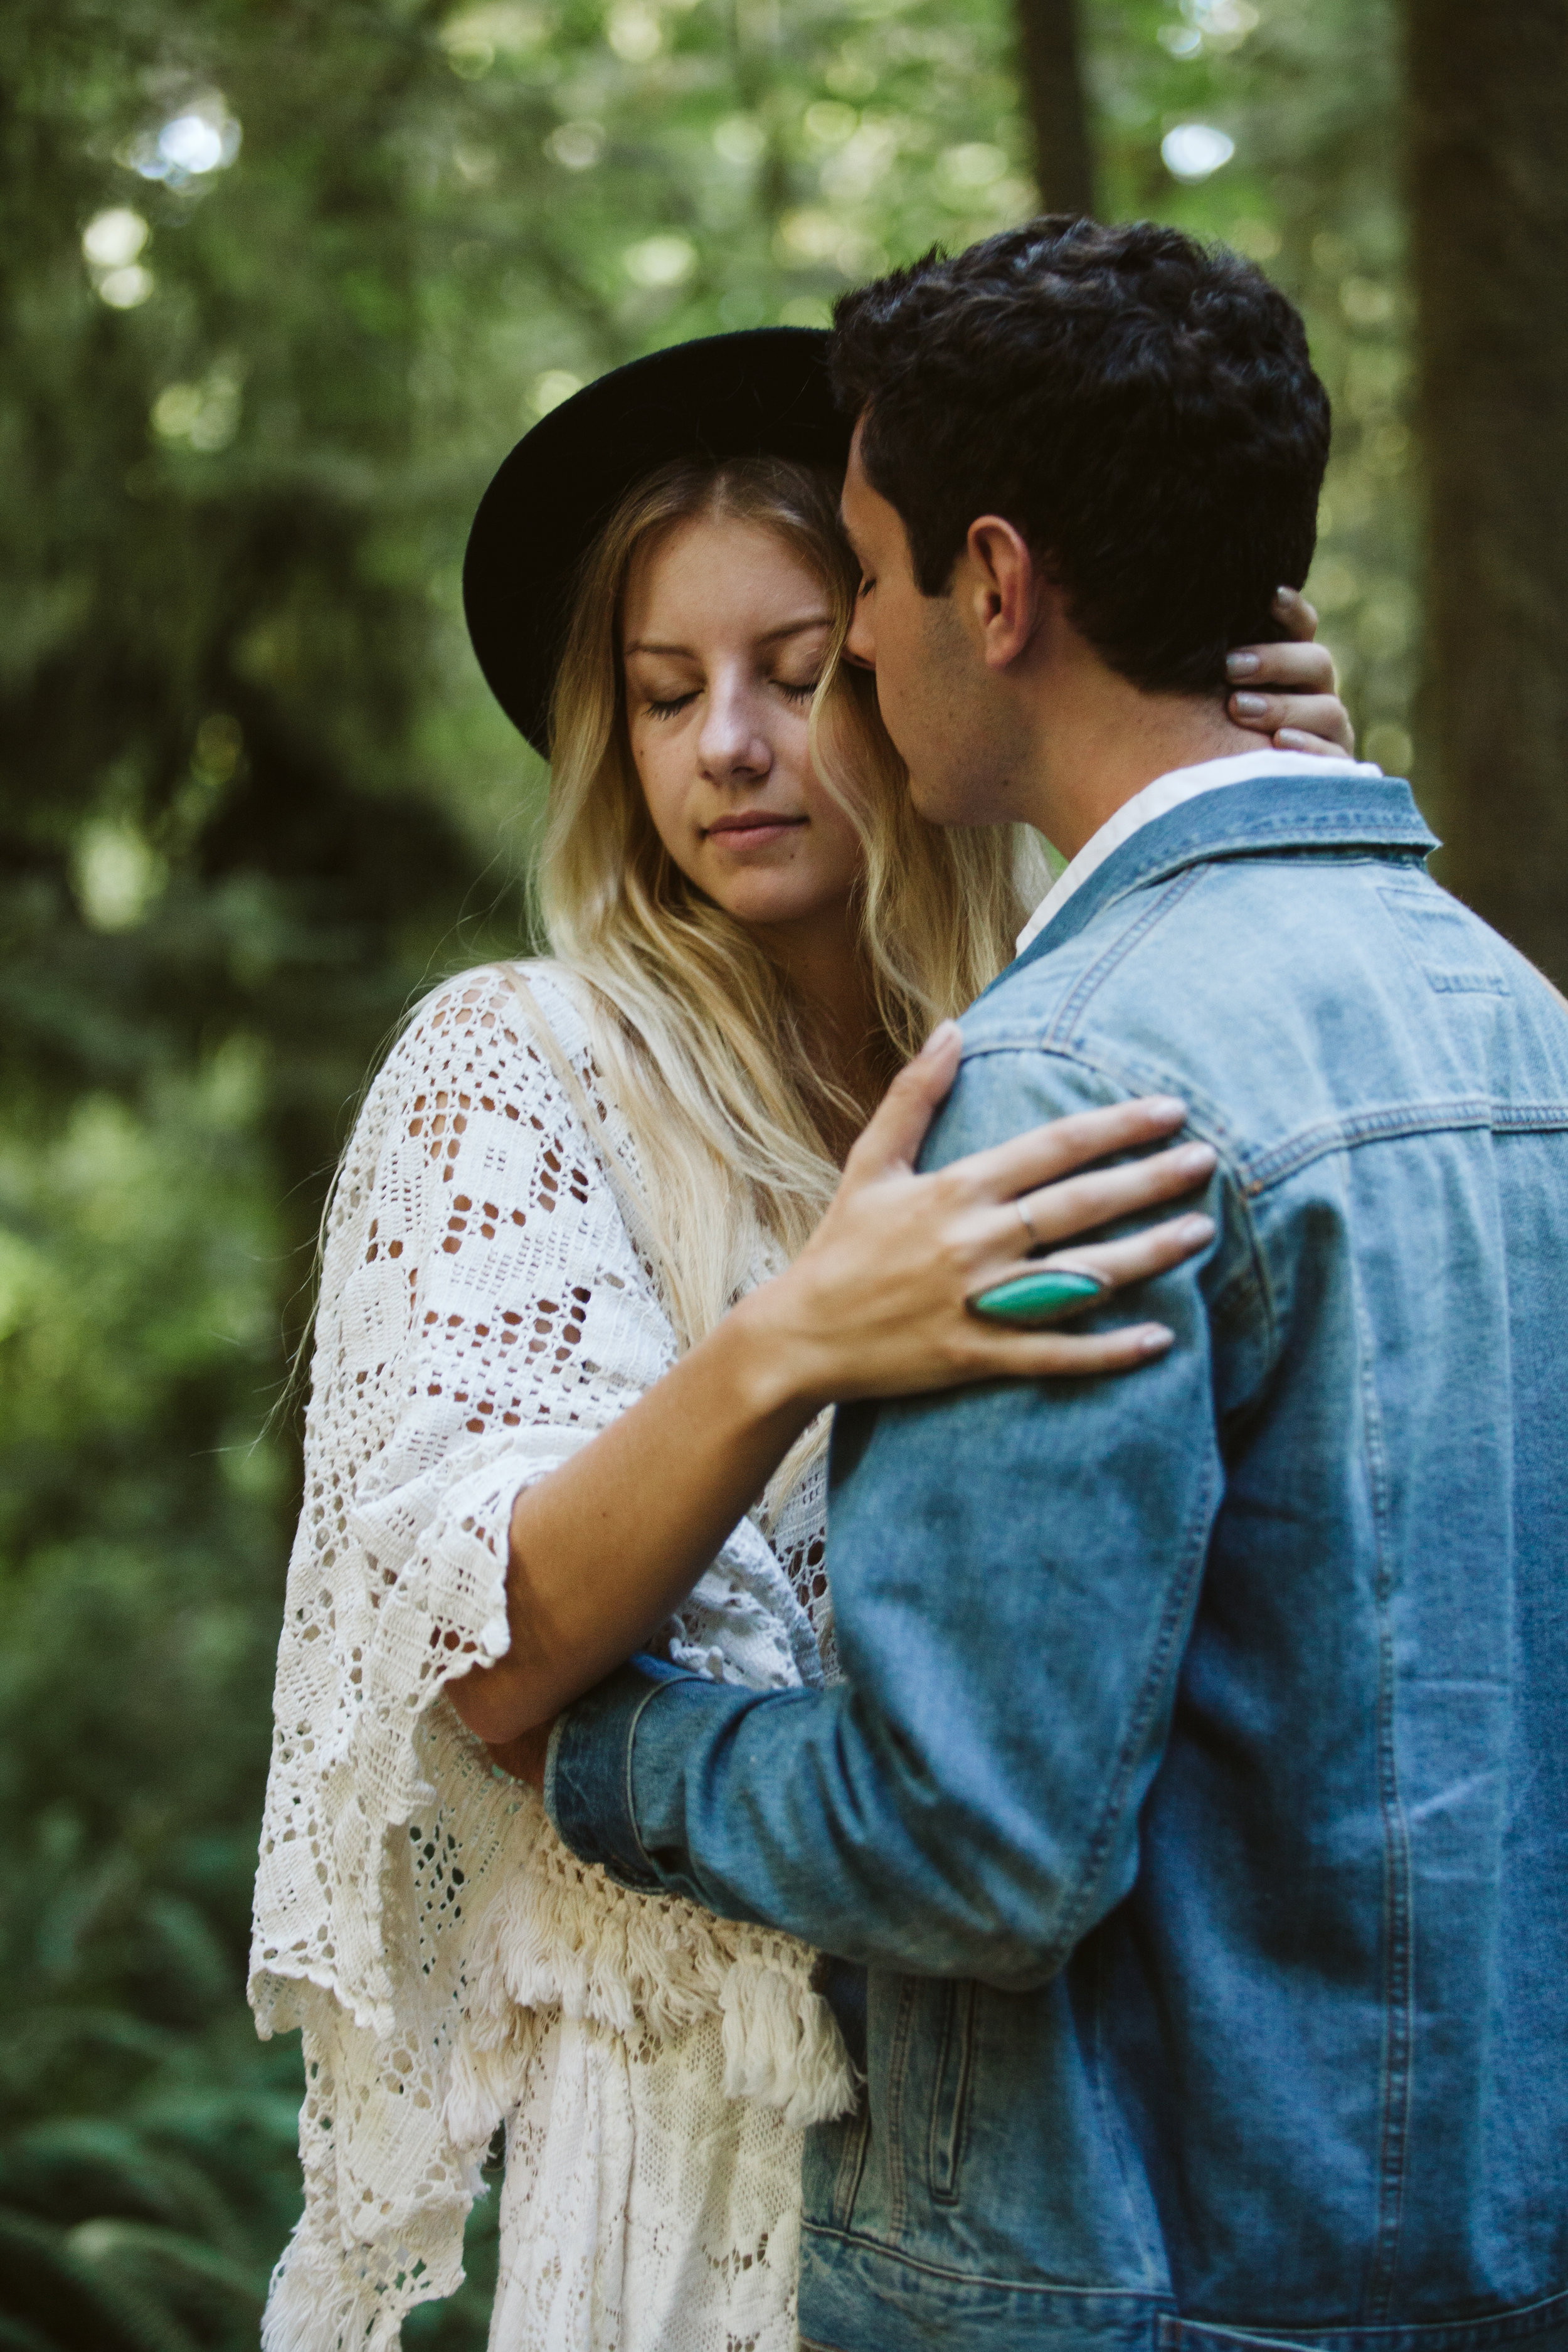 Redwoods_Elopement_Engagement_PNW_SouthernOregon_NorthernCalifornia_ (30 of 42).jpg